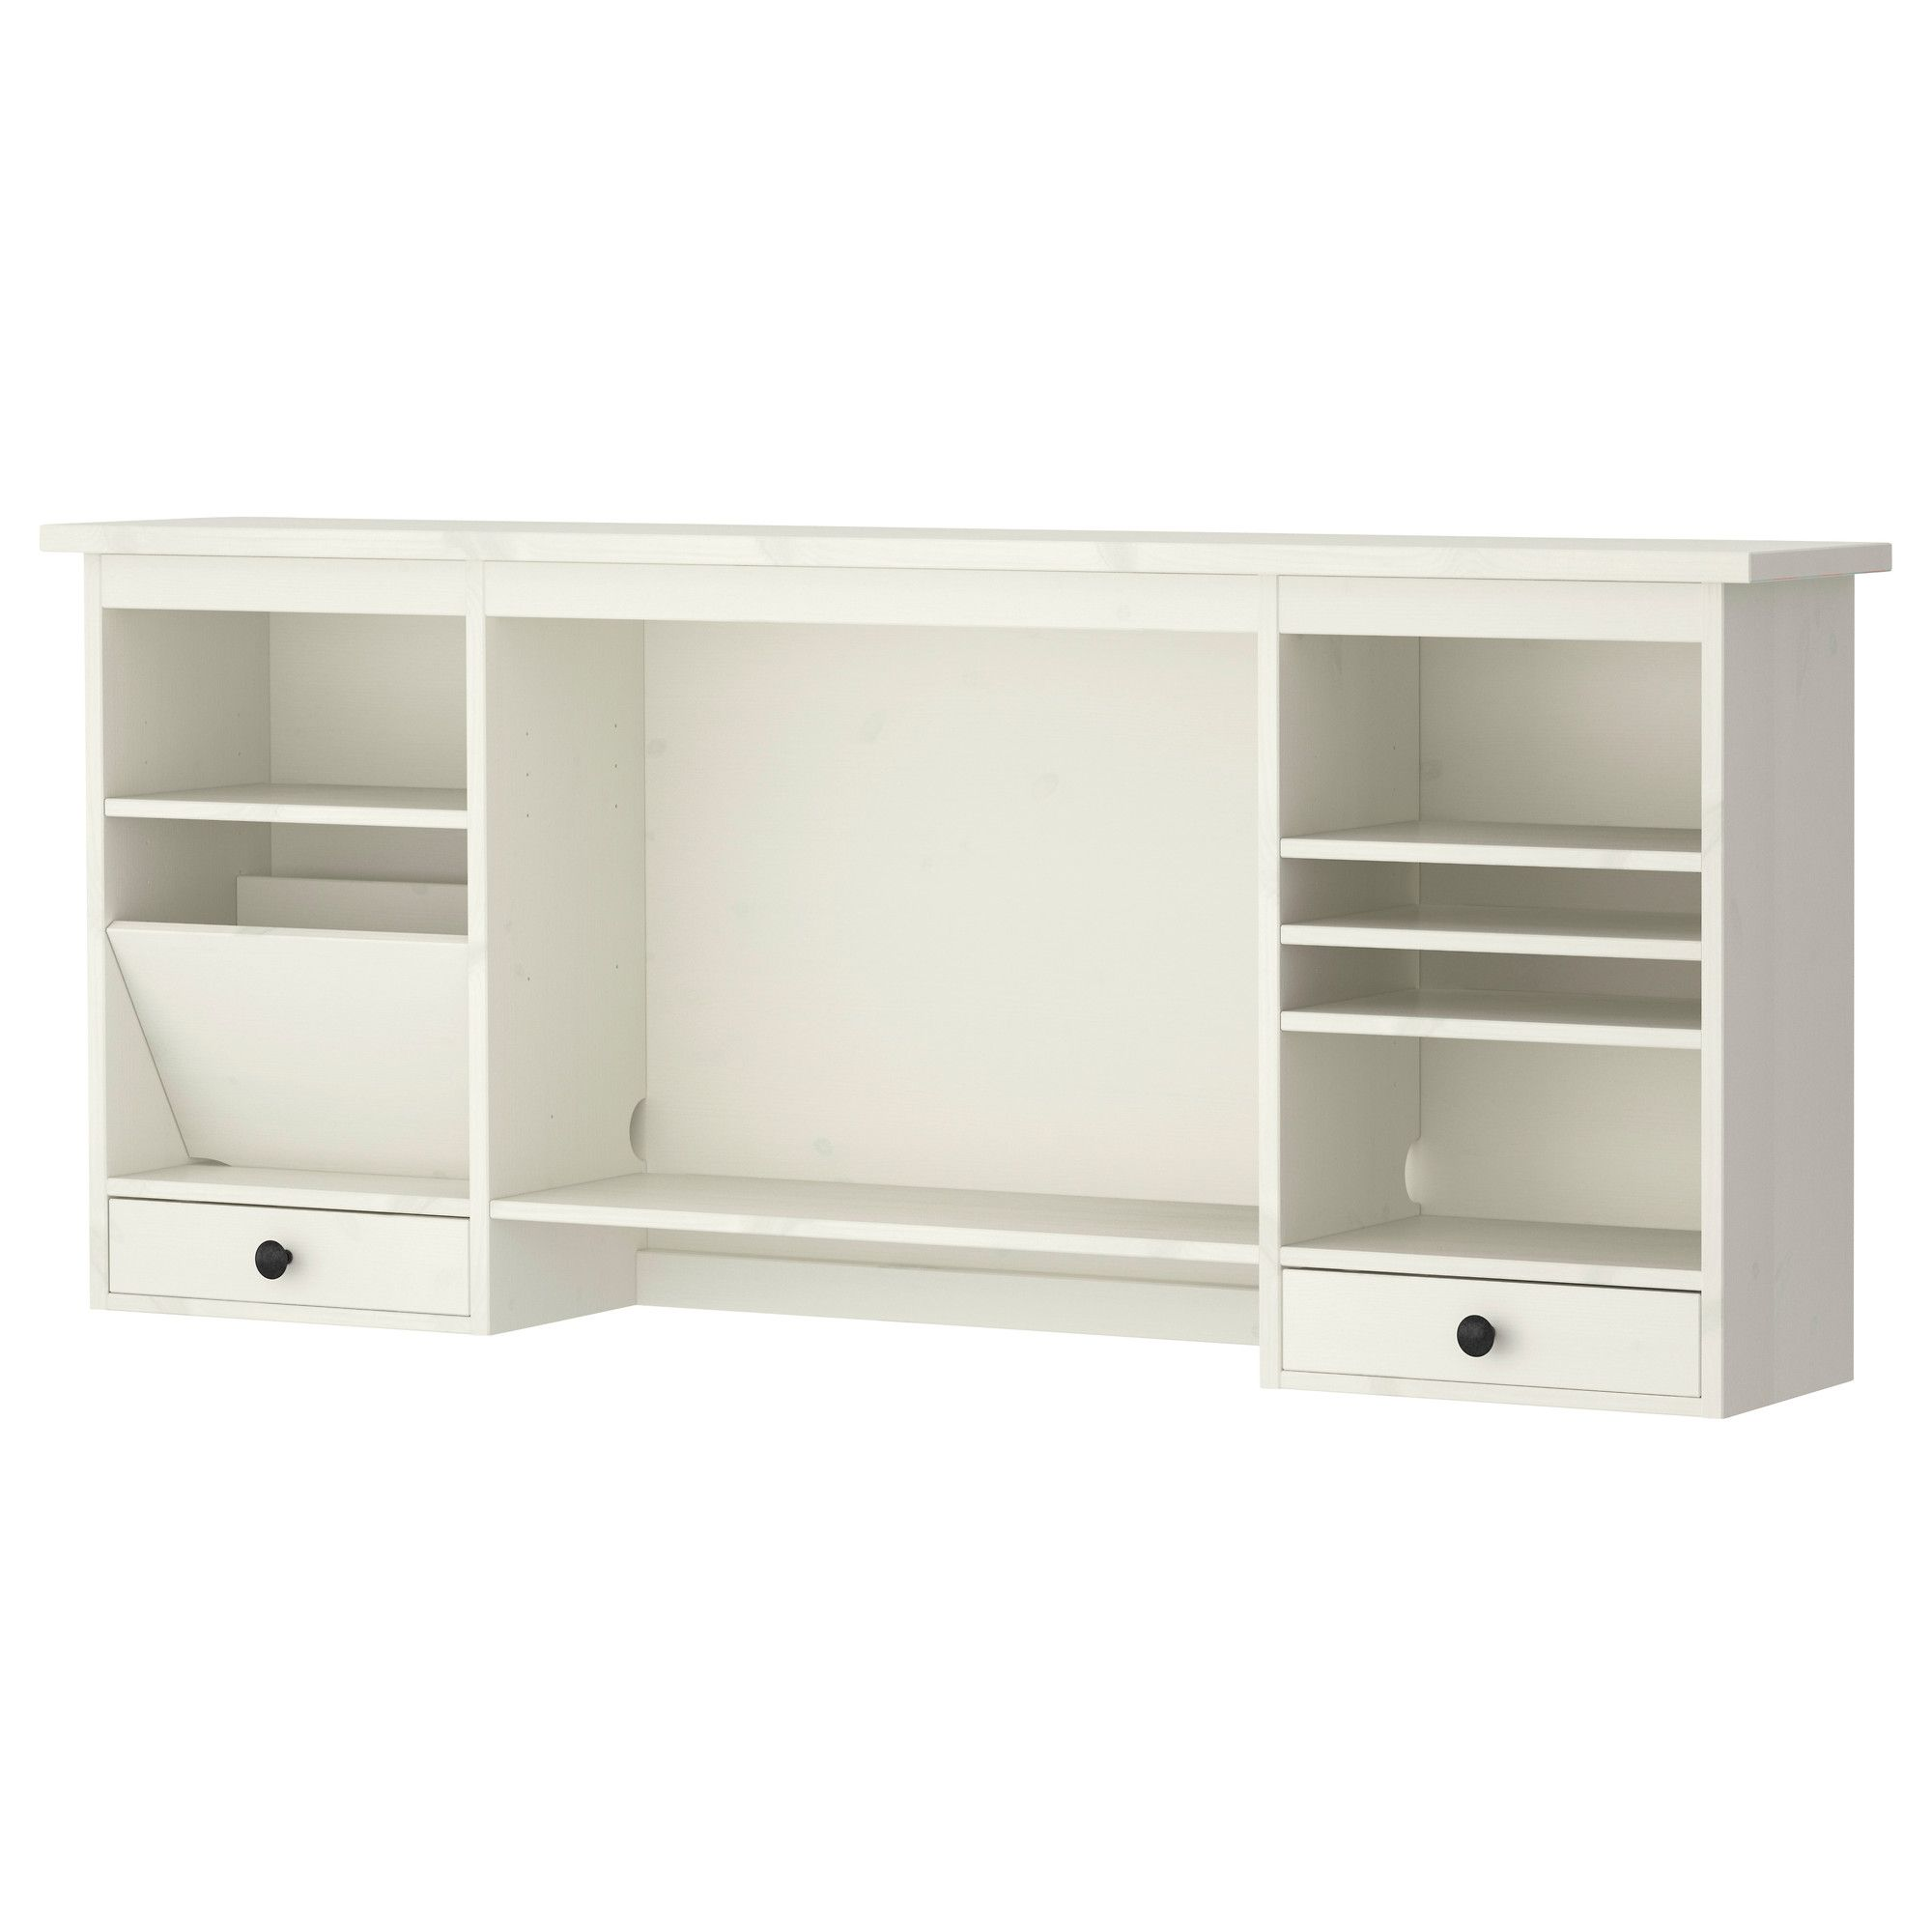 HEMNES Add-on unit for desk, white stain in 2018 | Ikea office ...